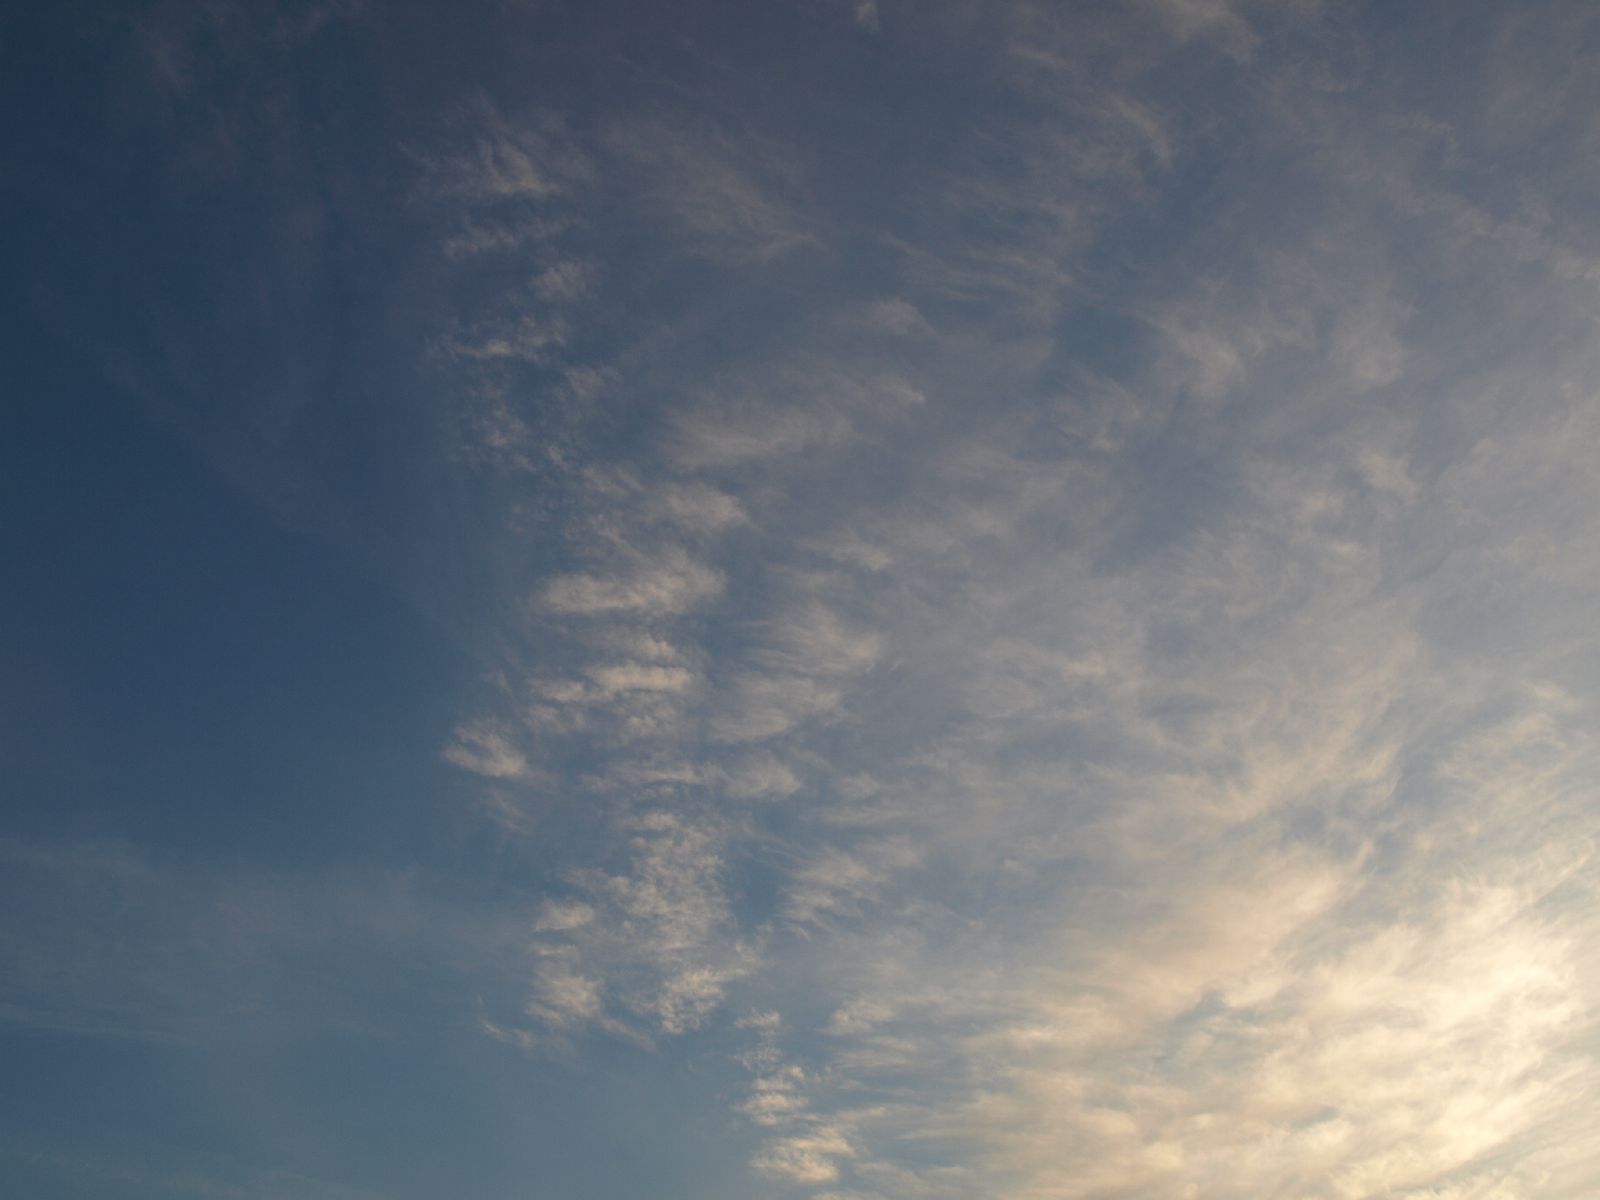 Sky_Clouds_Photo_Texture_A_P9285509